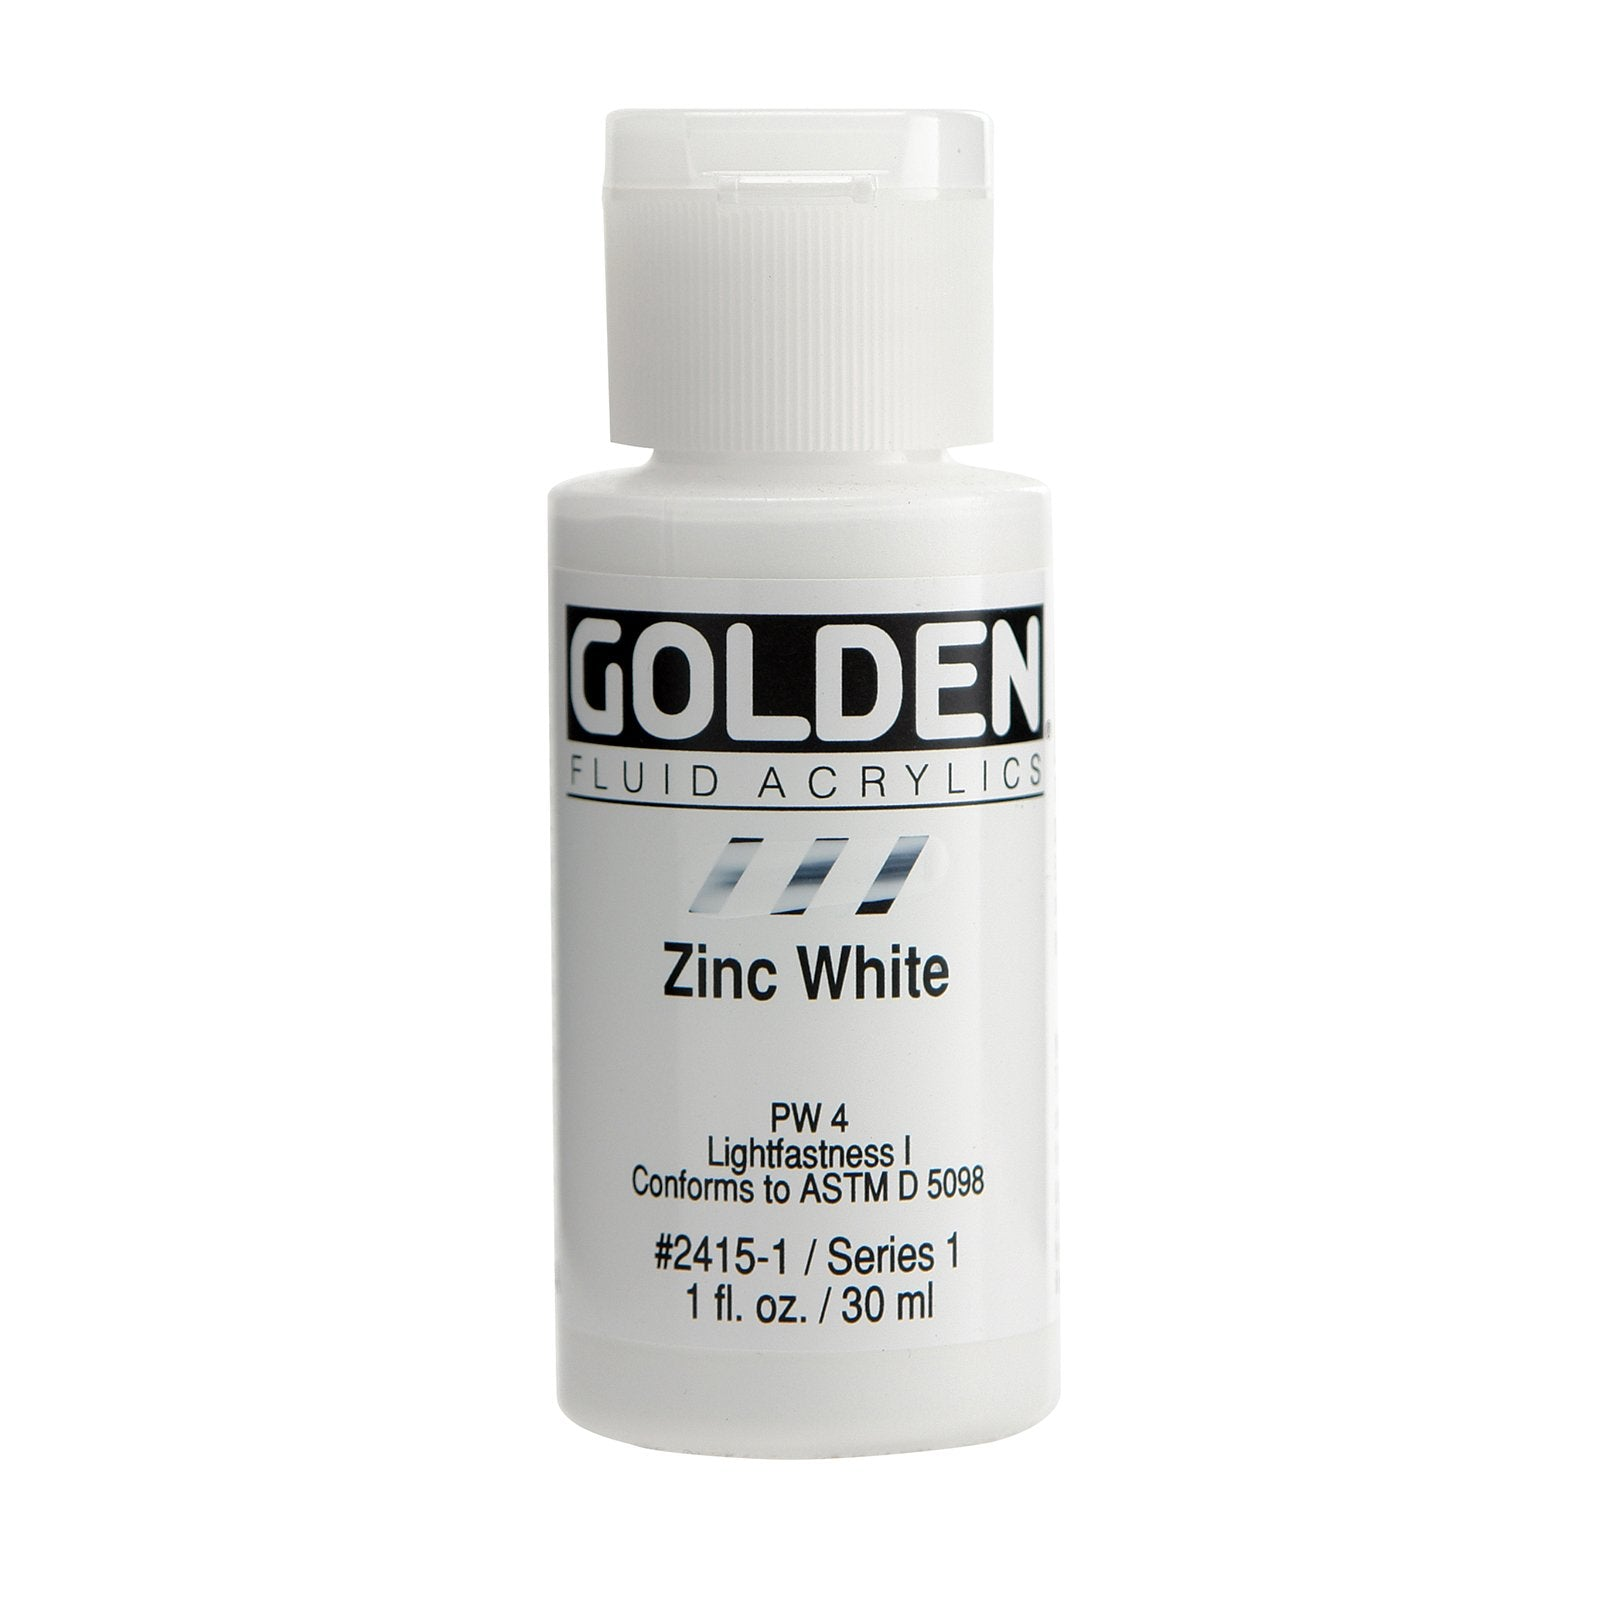 Golden® Fluid Acrylic, 1 oz., Zinc White